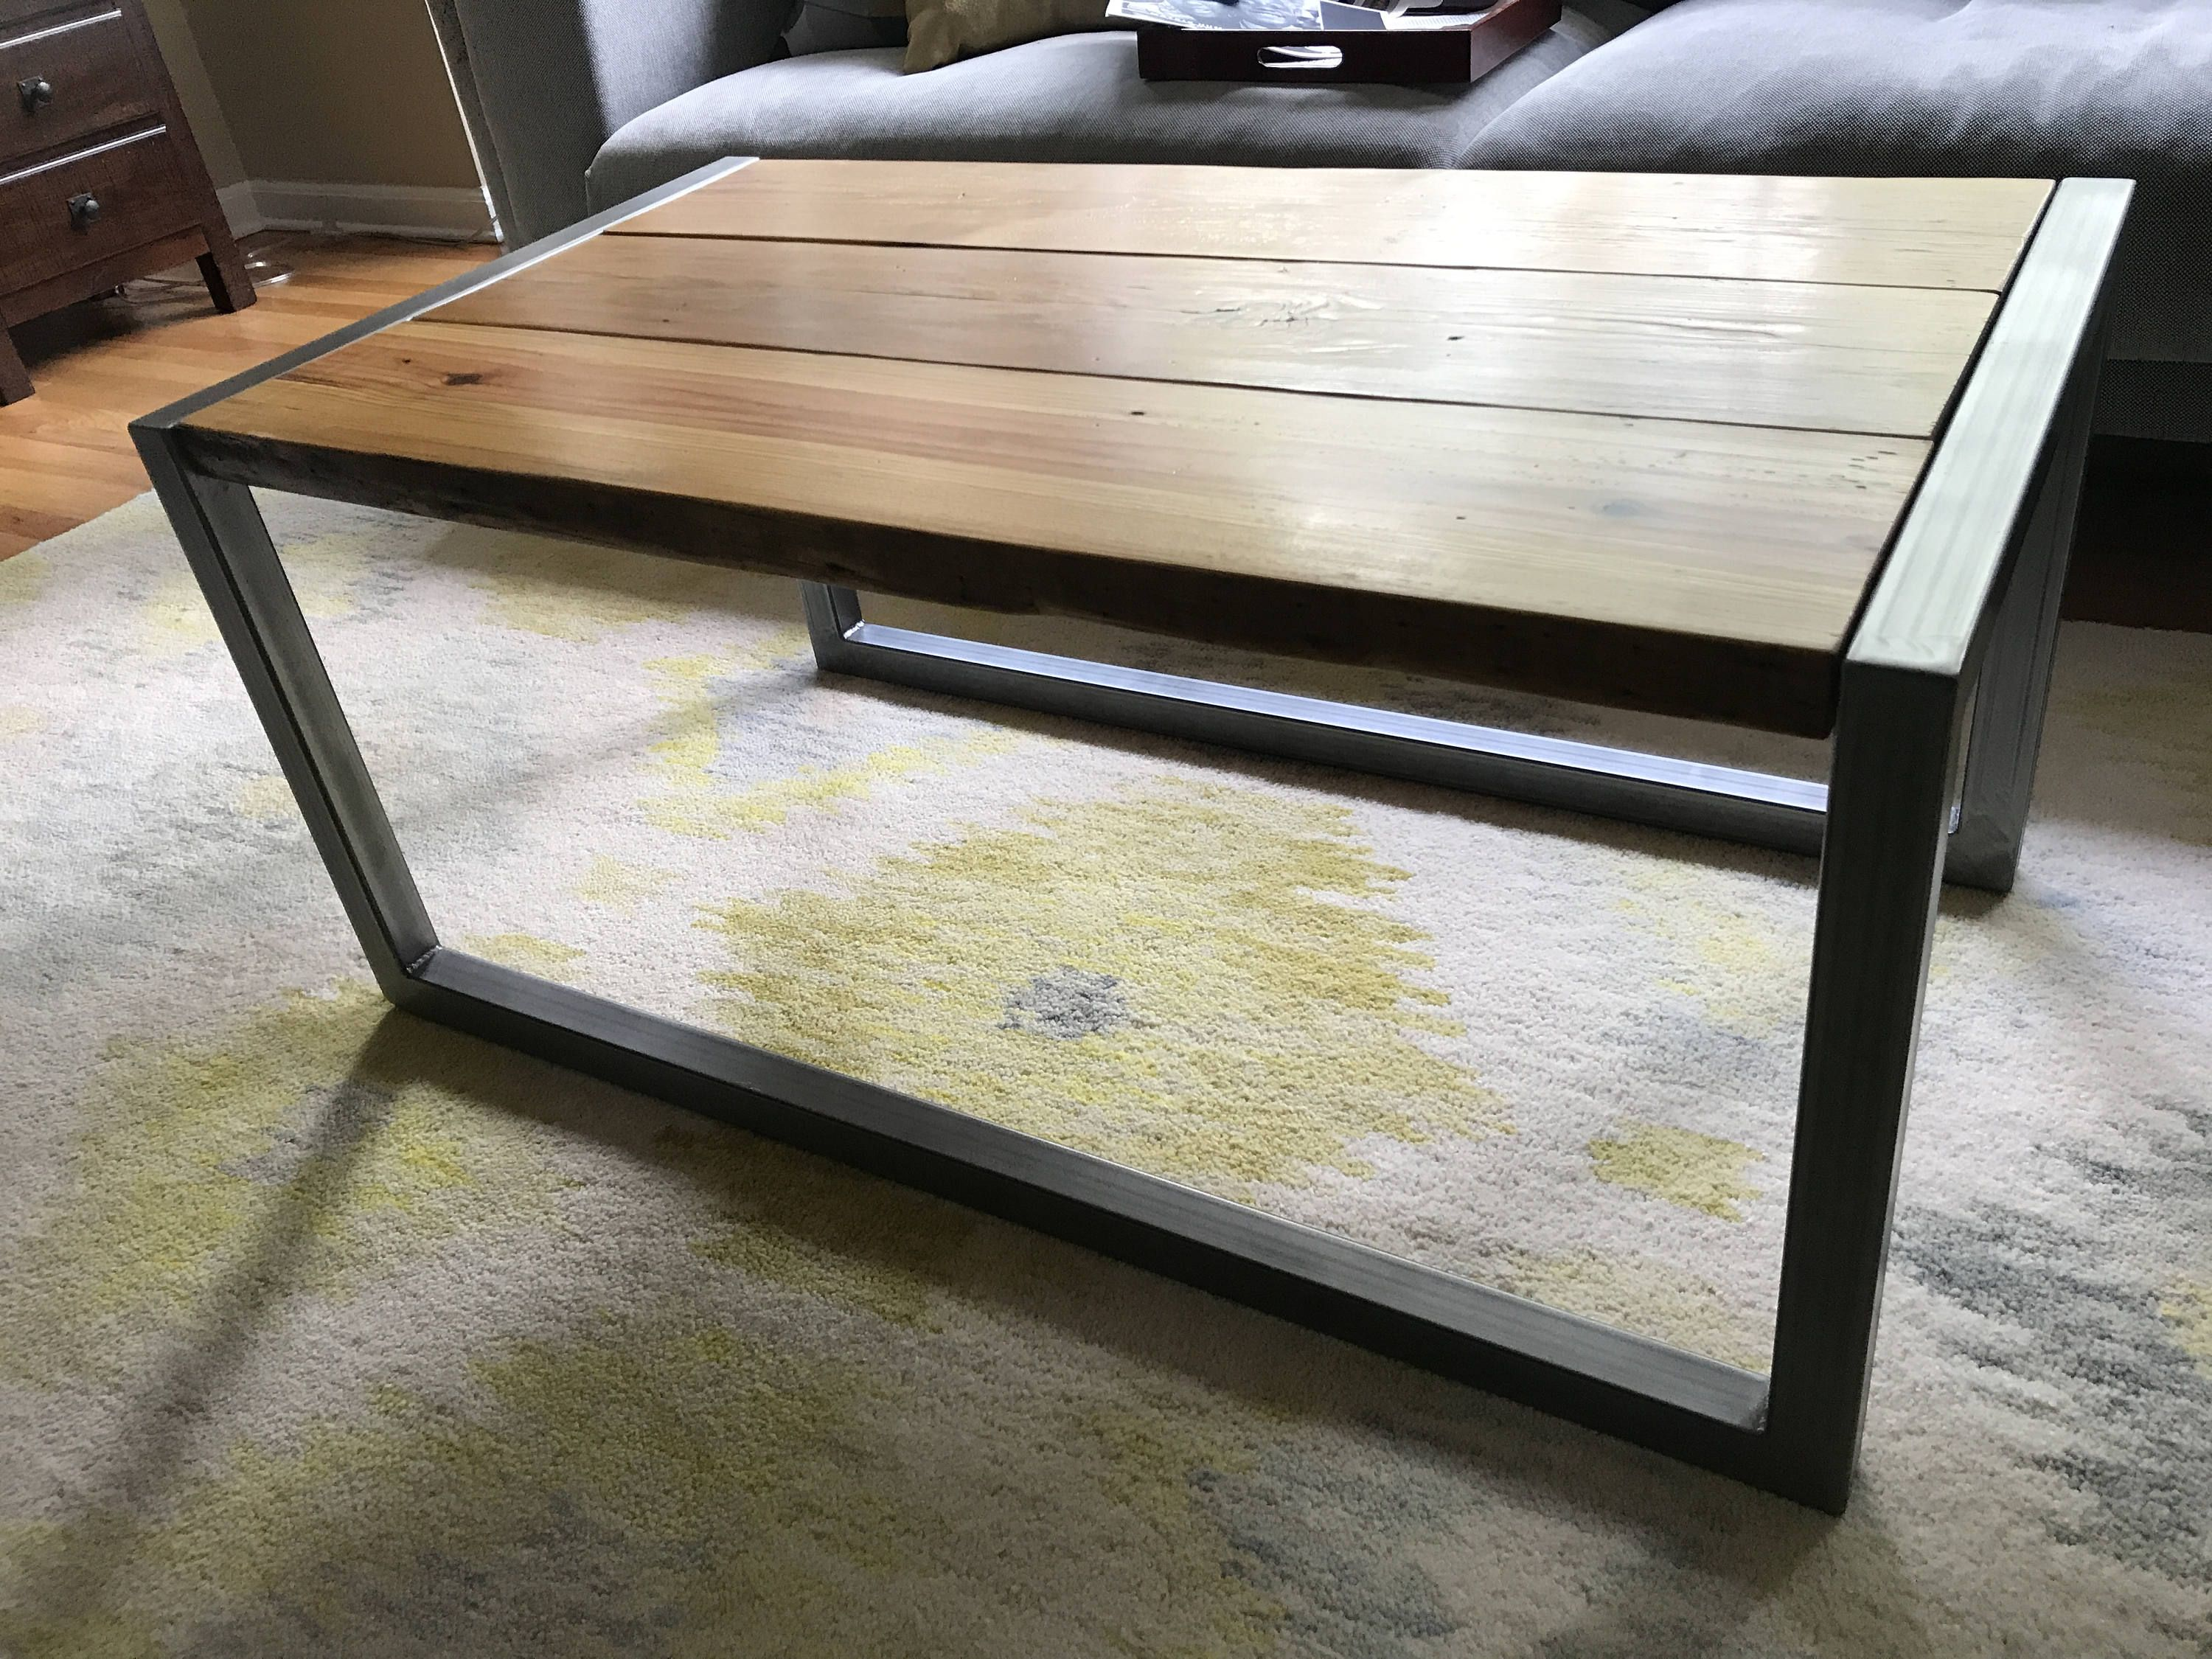 Modern And Rustic Reclaimed Wood Coffee Table Etsy Coffee Table Wood Rustic Reclaimed Wood Modern Wood Coffee Table [ 2250 x 3000 Pixel ]